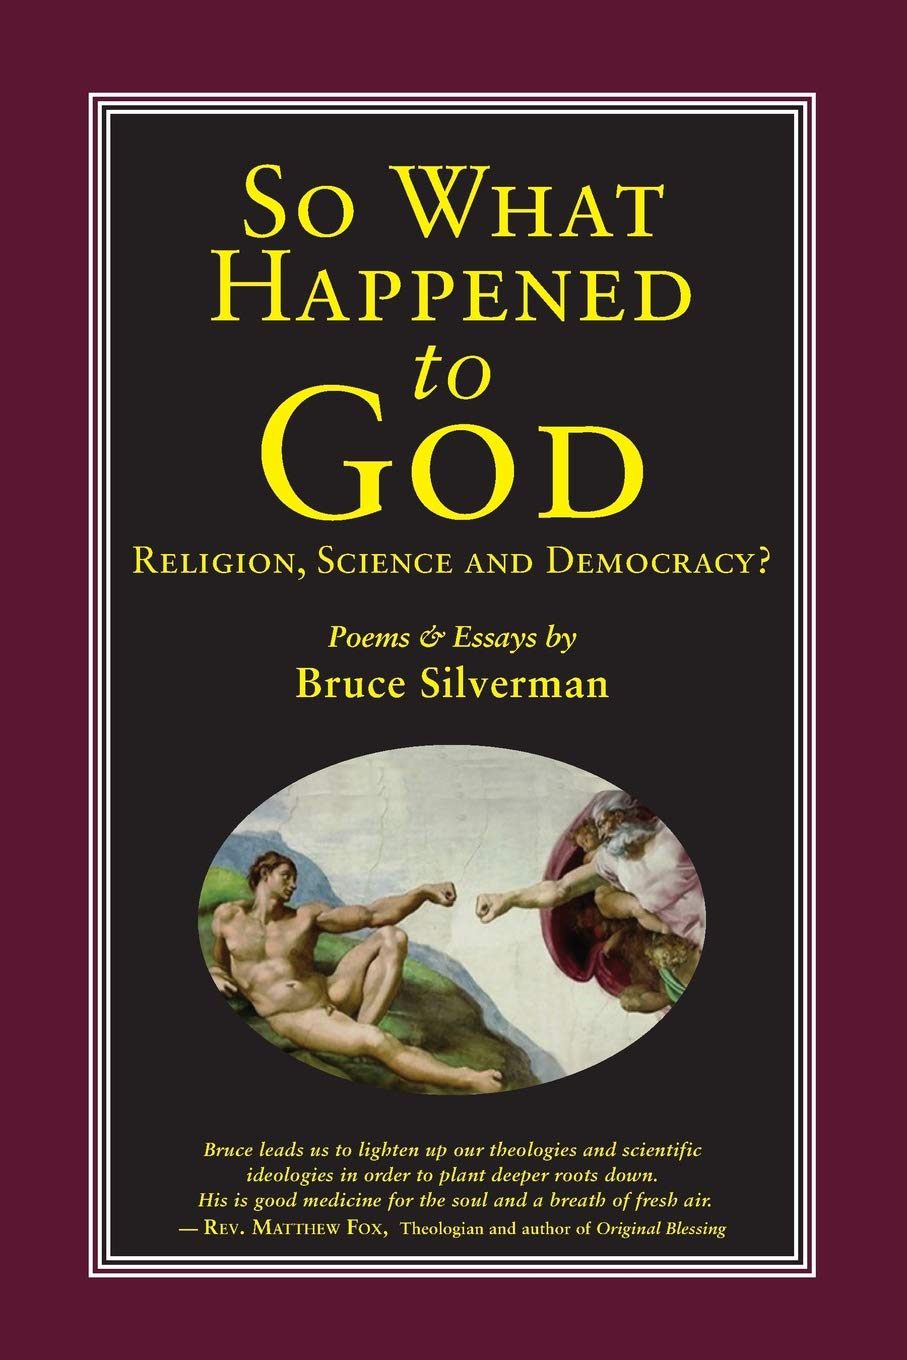 So What Happened to God, Religion, Science, and Democracy?: Poems